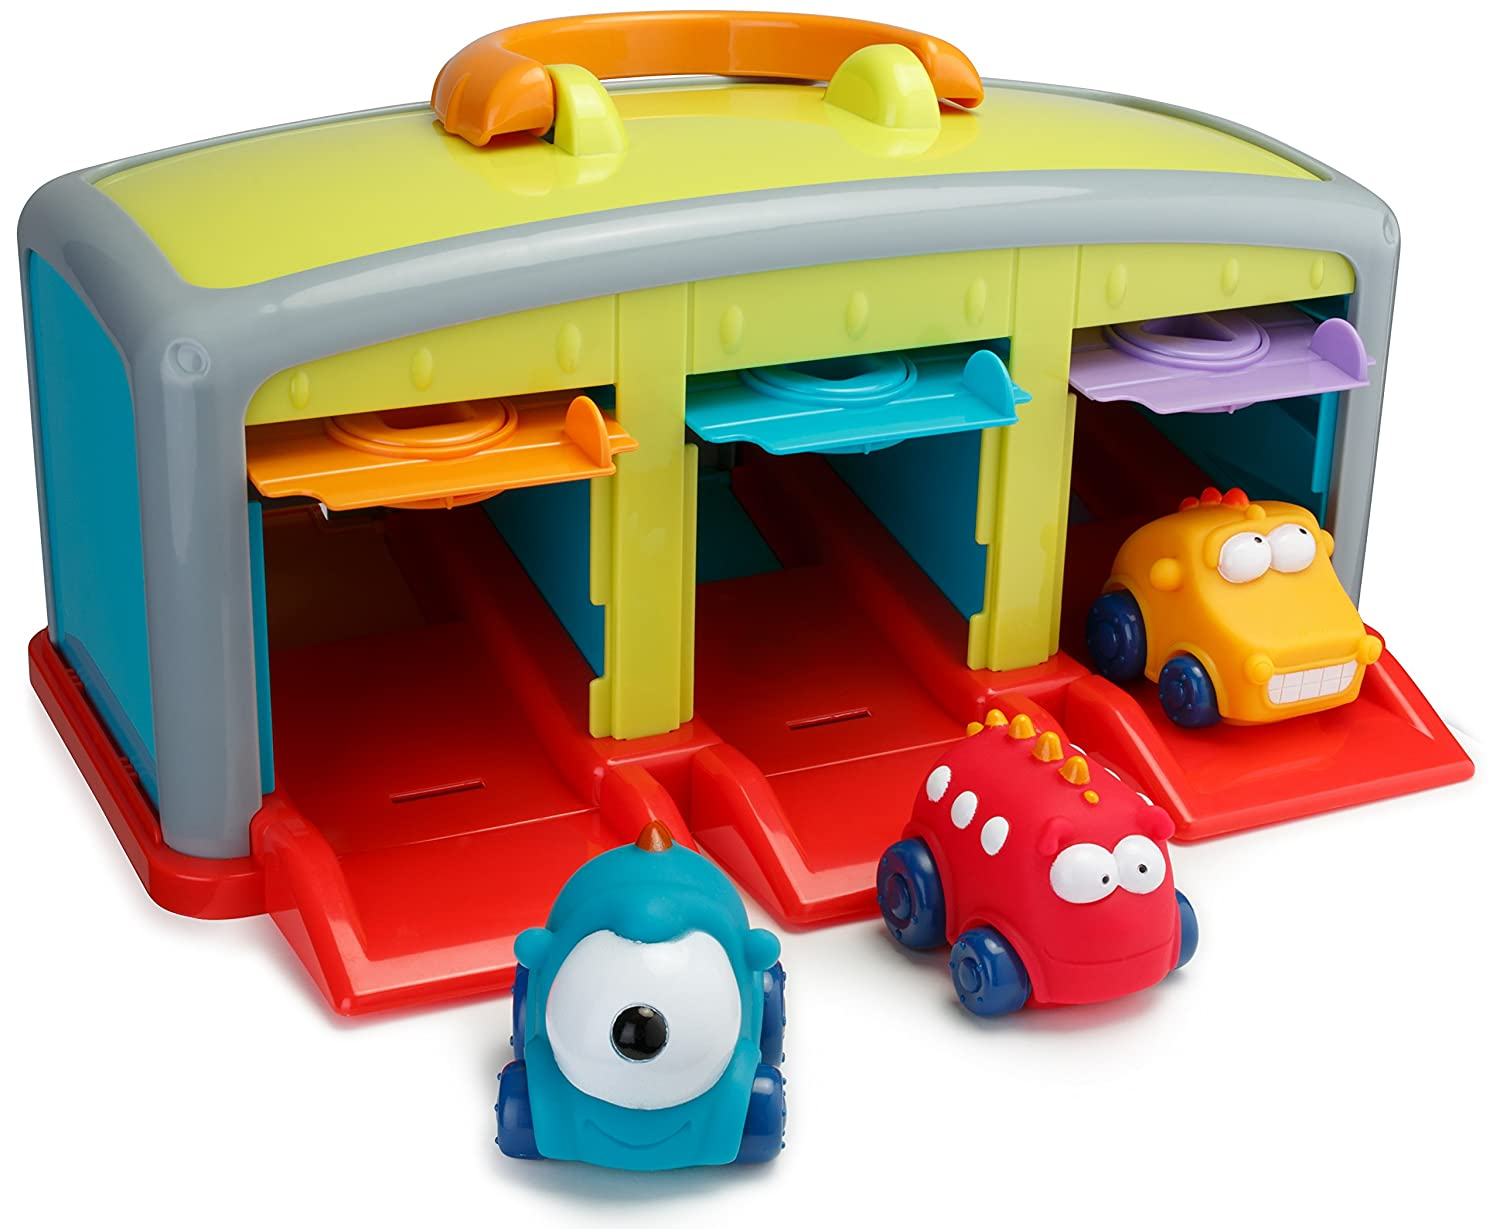 amazoncom playkidz super durable monster garage monster vehicle car garage toys for kids toys games